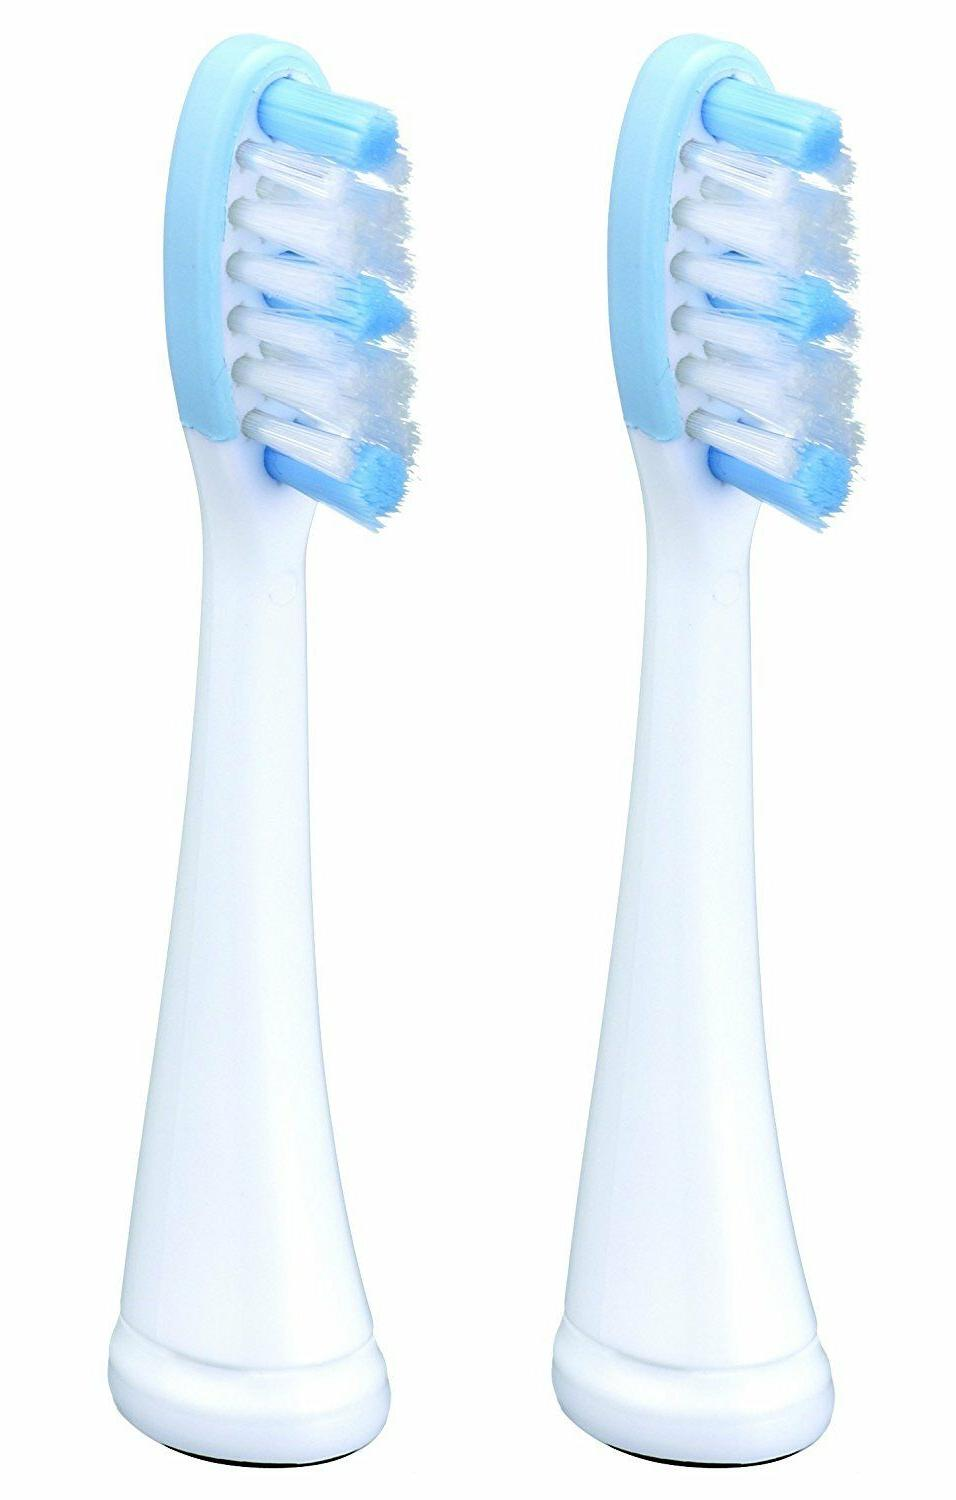 Panasonic WEW0929 Electric Toothbrush Heads Tongue Cleaner